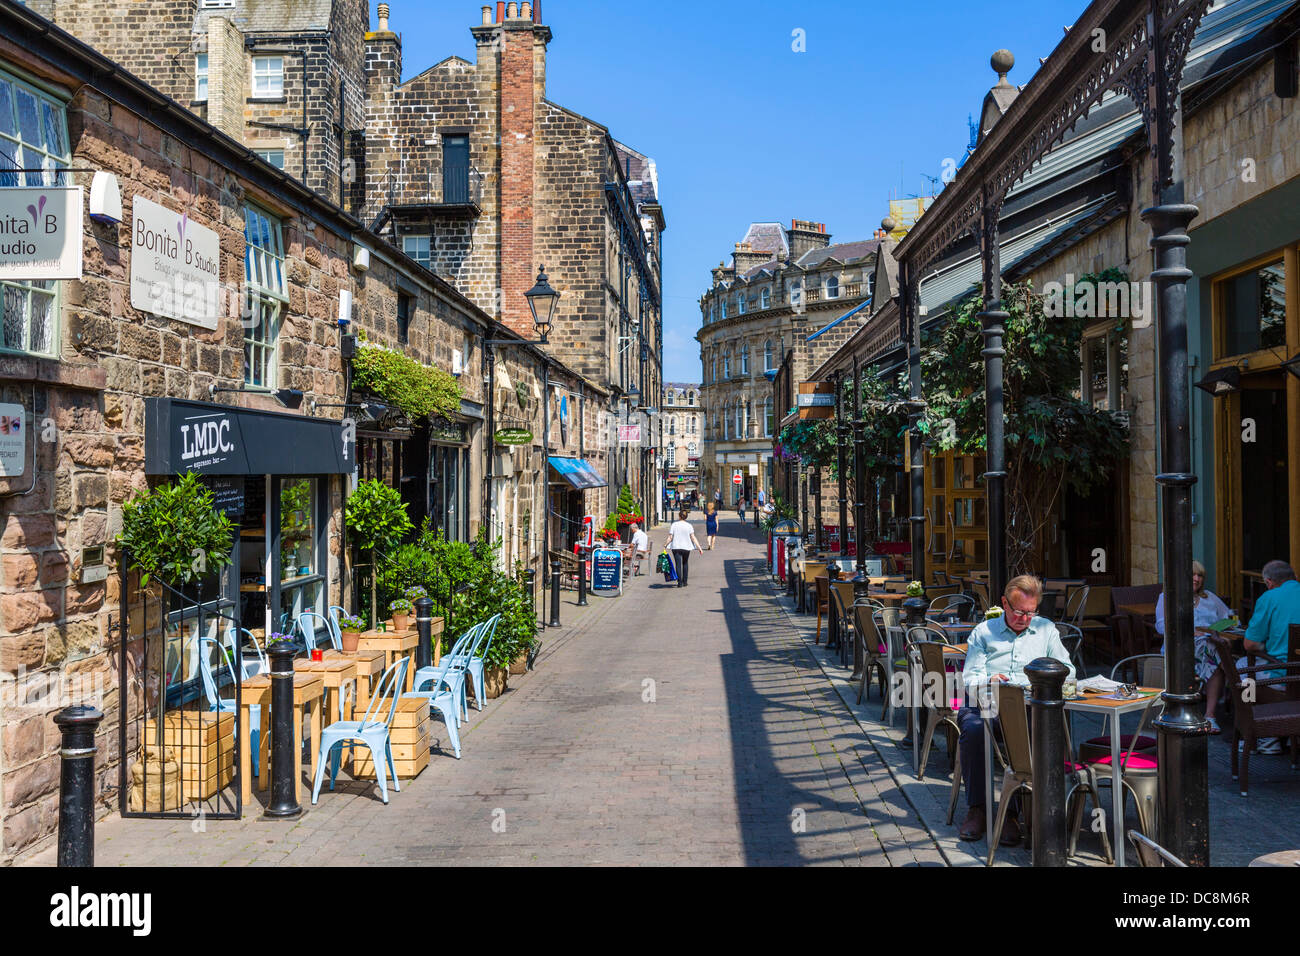 Cafes, bars and restaurants on John Street in the old town centre, Harrogate, North Yorkshire, England, UK Stock Photo